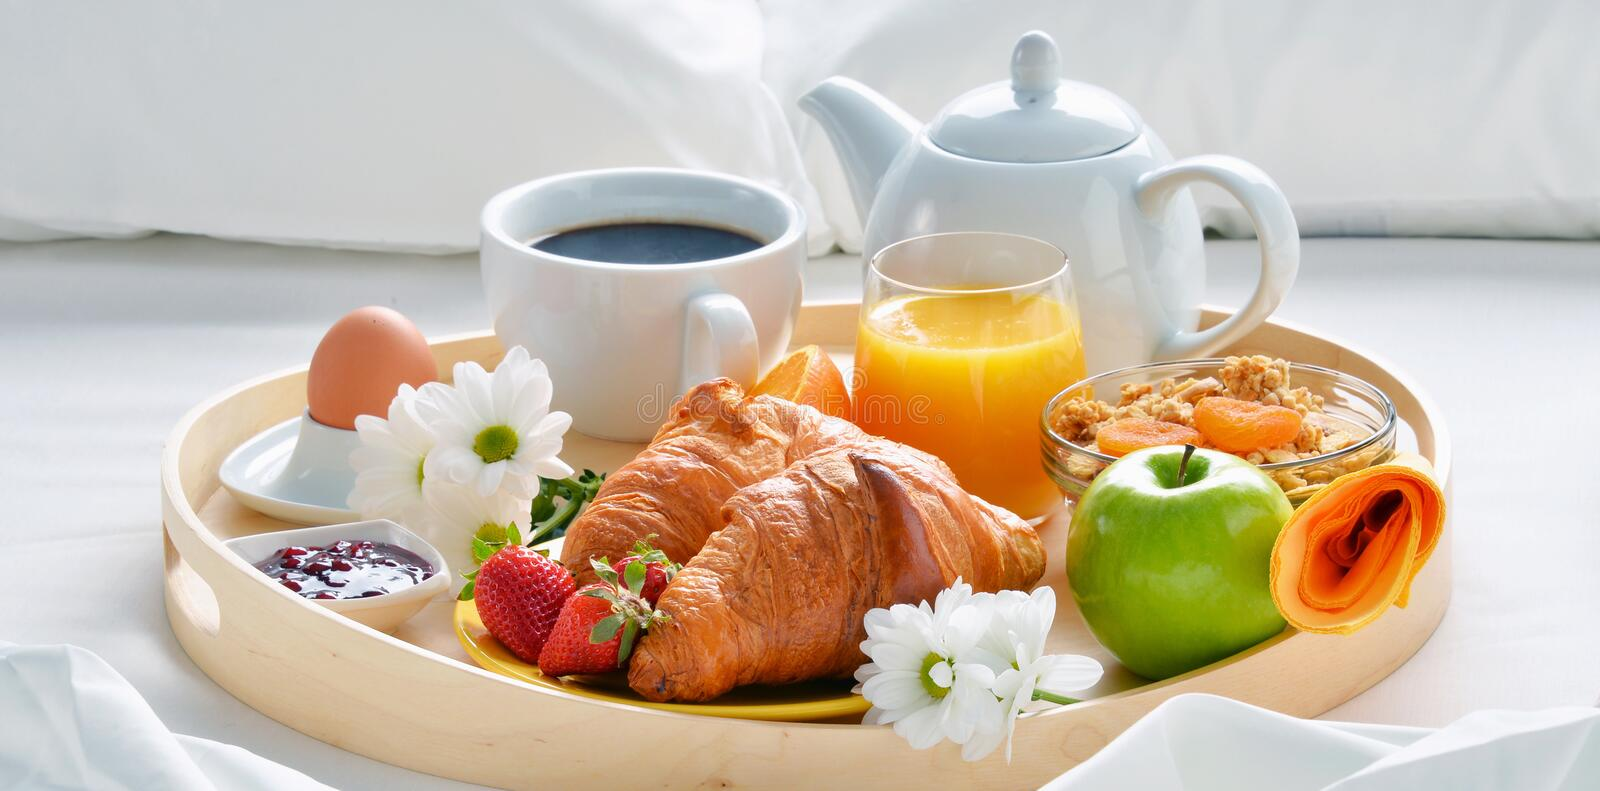 Breakfast tray in bed in hotel room royalty free stock photo